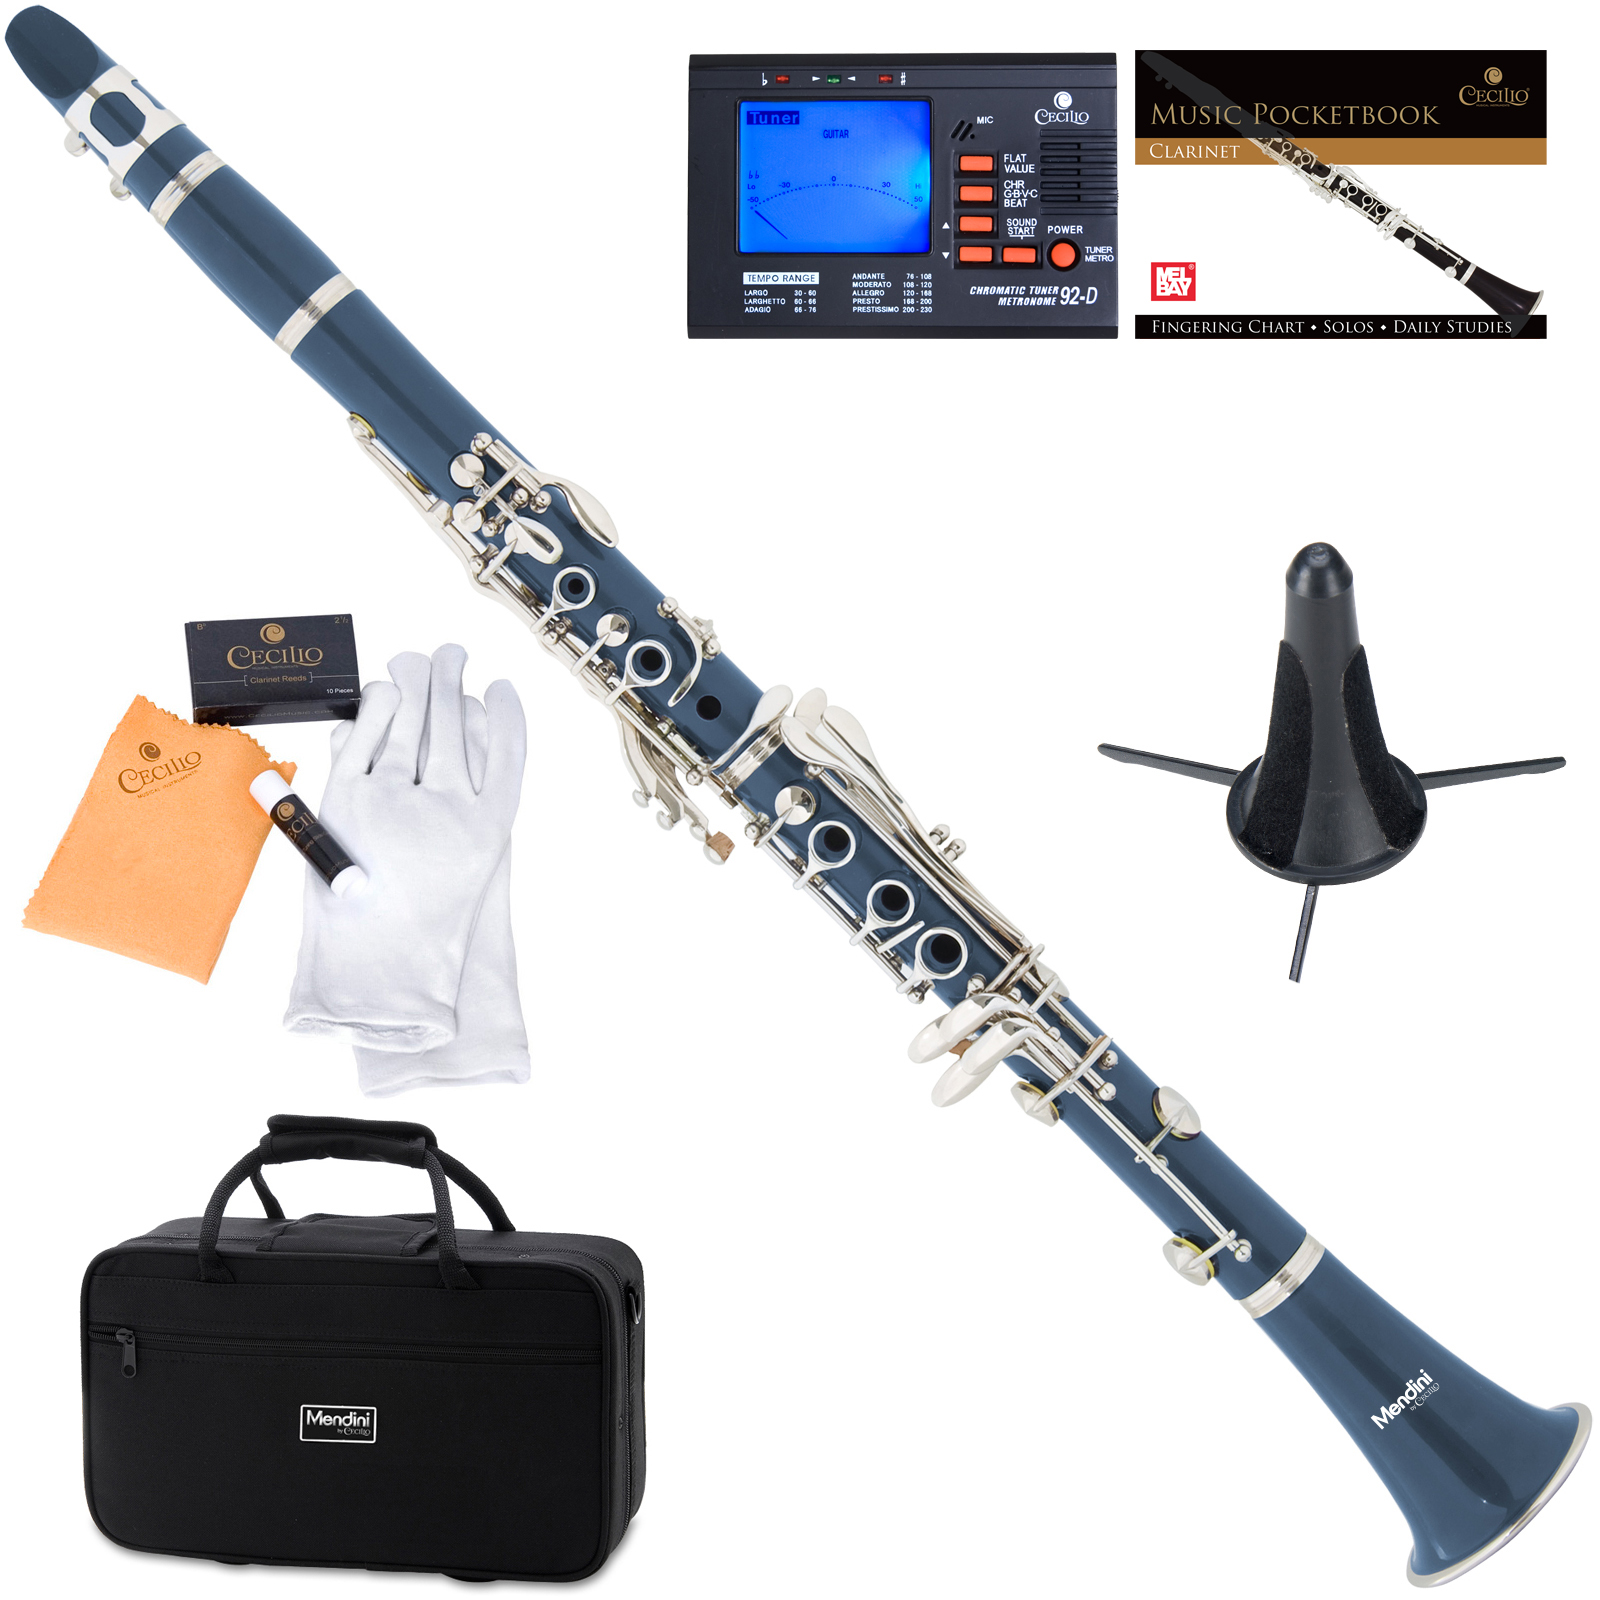 Mendini by Cecilio MCT-BL Blue ABS Bb Clarinet w/1 Year Warranty, Stand, Tuner, 10 Reeds, Pocketbook, Mouthpiece, Case, B Flat